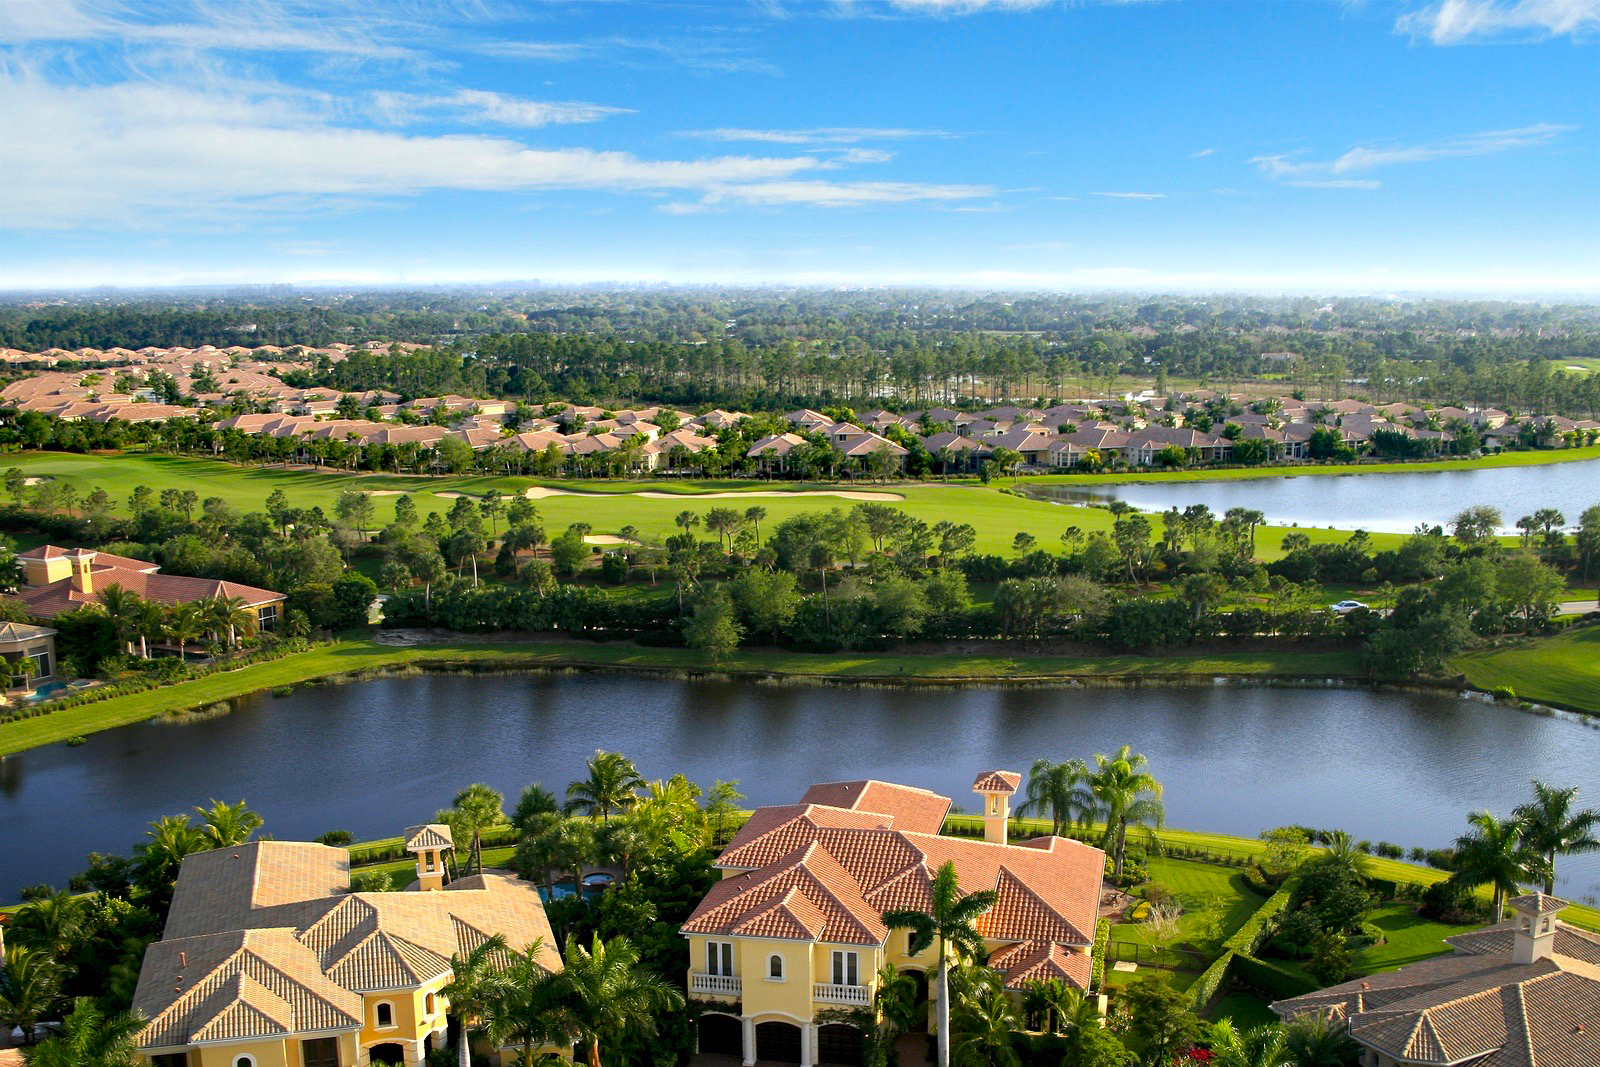 Pulte Homes is building a nreew community inside Boca Lago in /Boca Raton, FL.